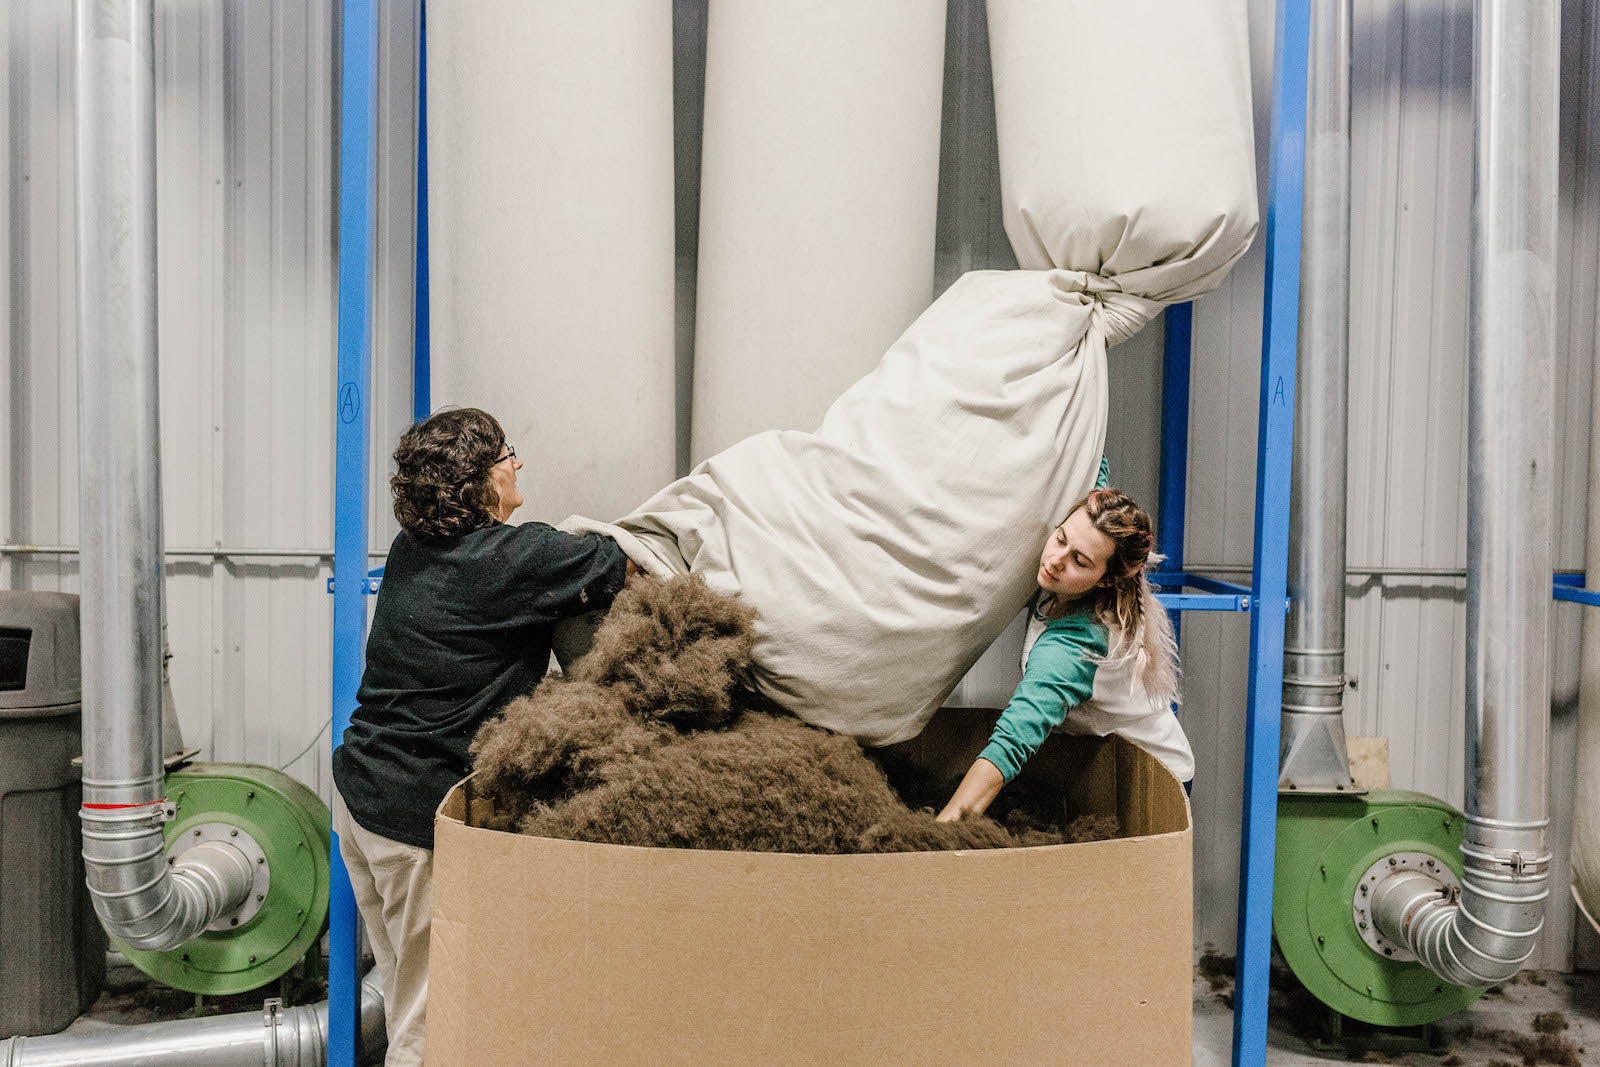 United By Blue employees harvest bison fiber to use as insulation in their apparel products.